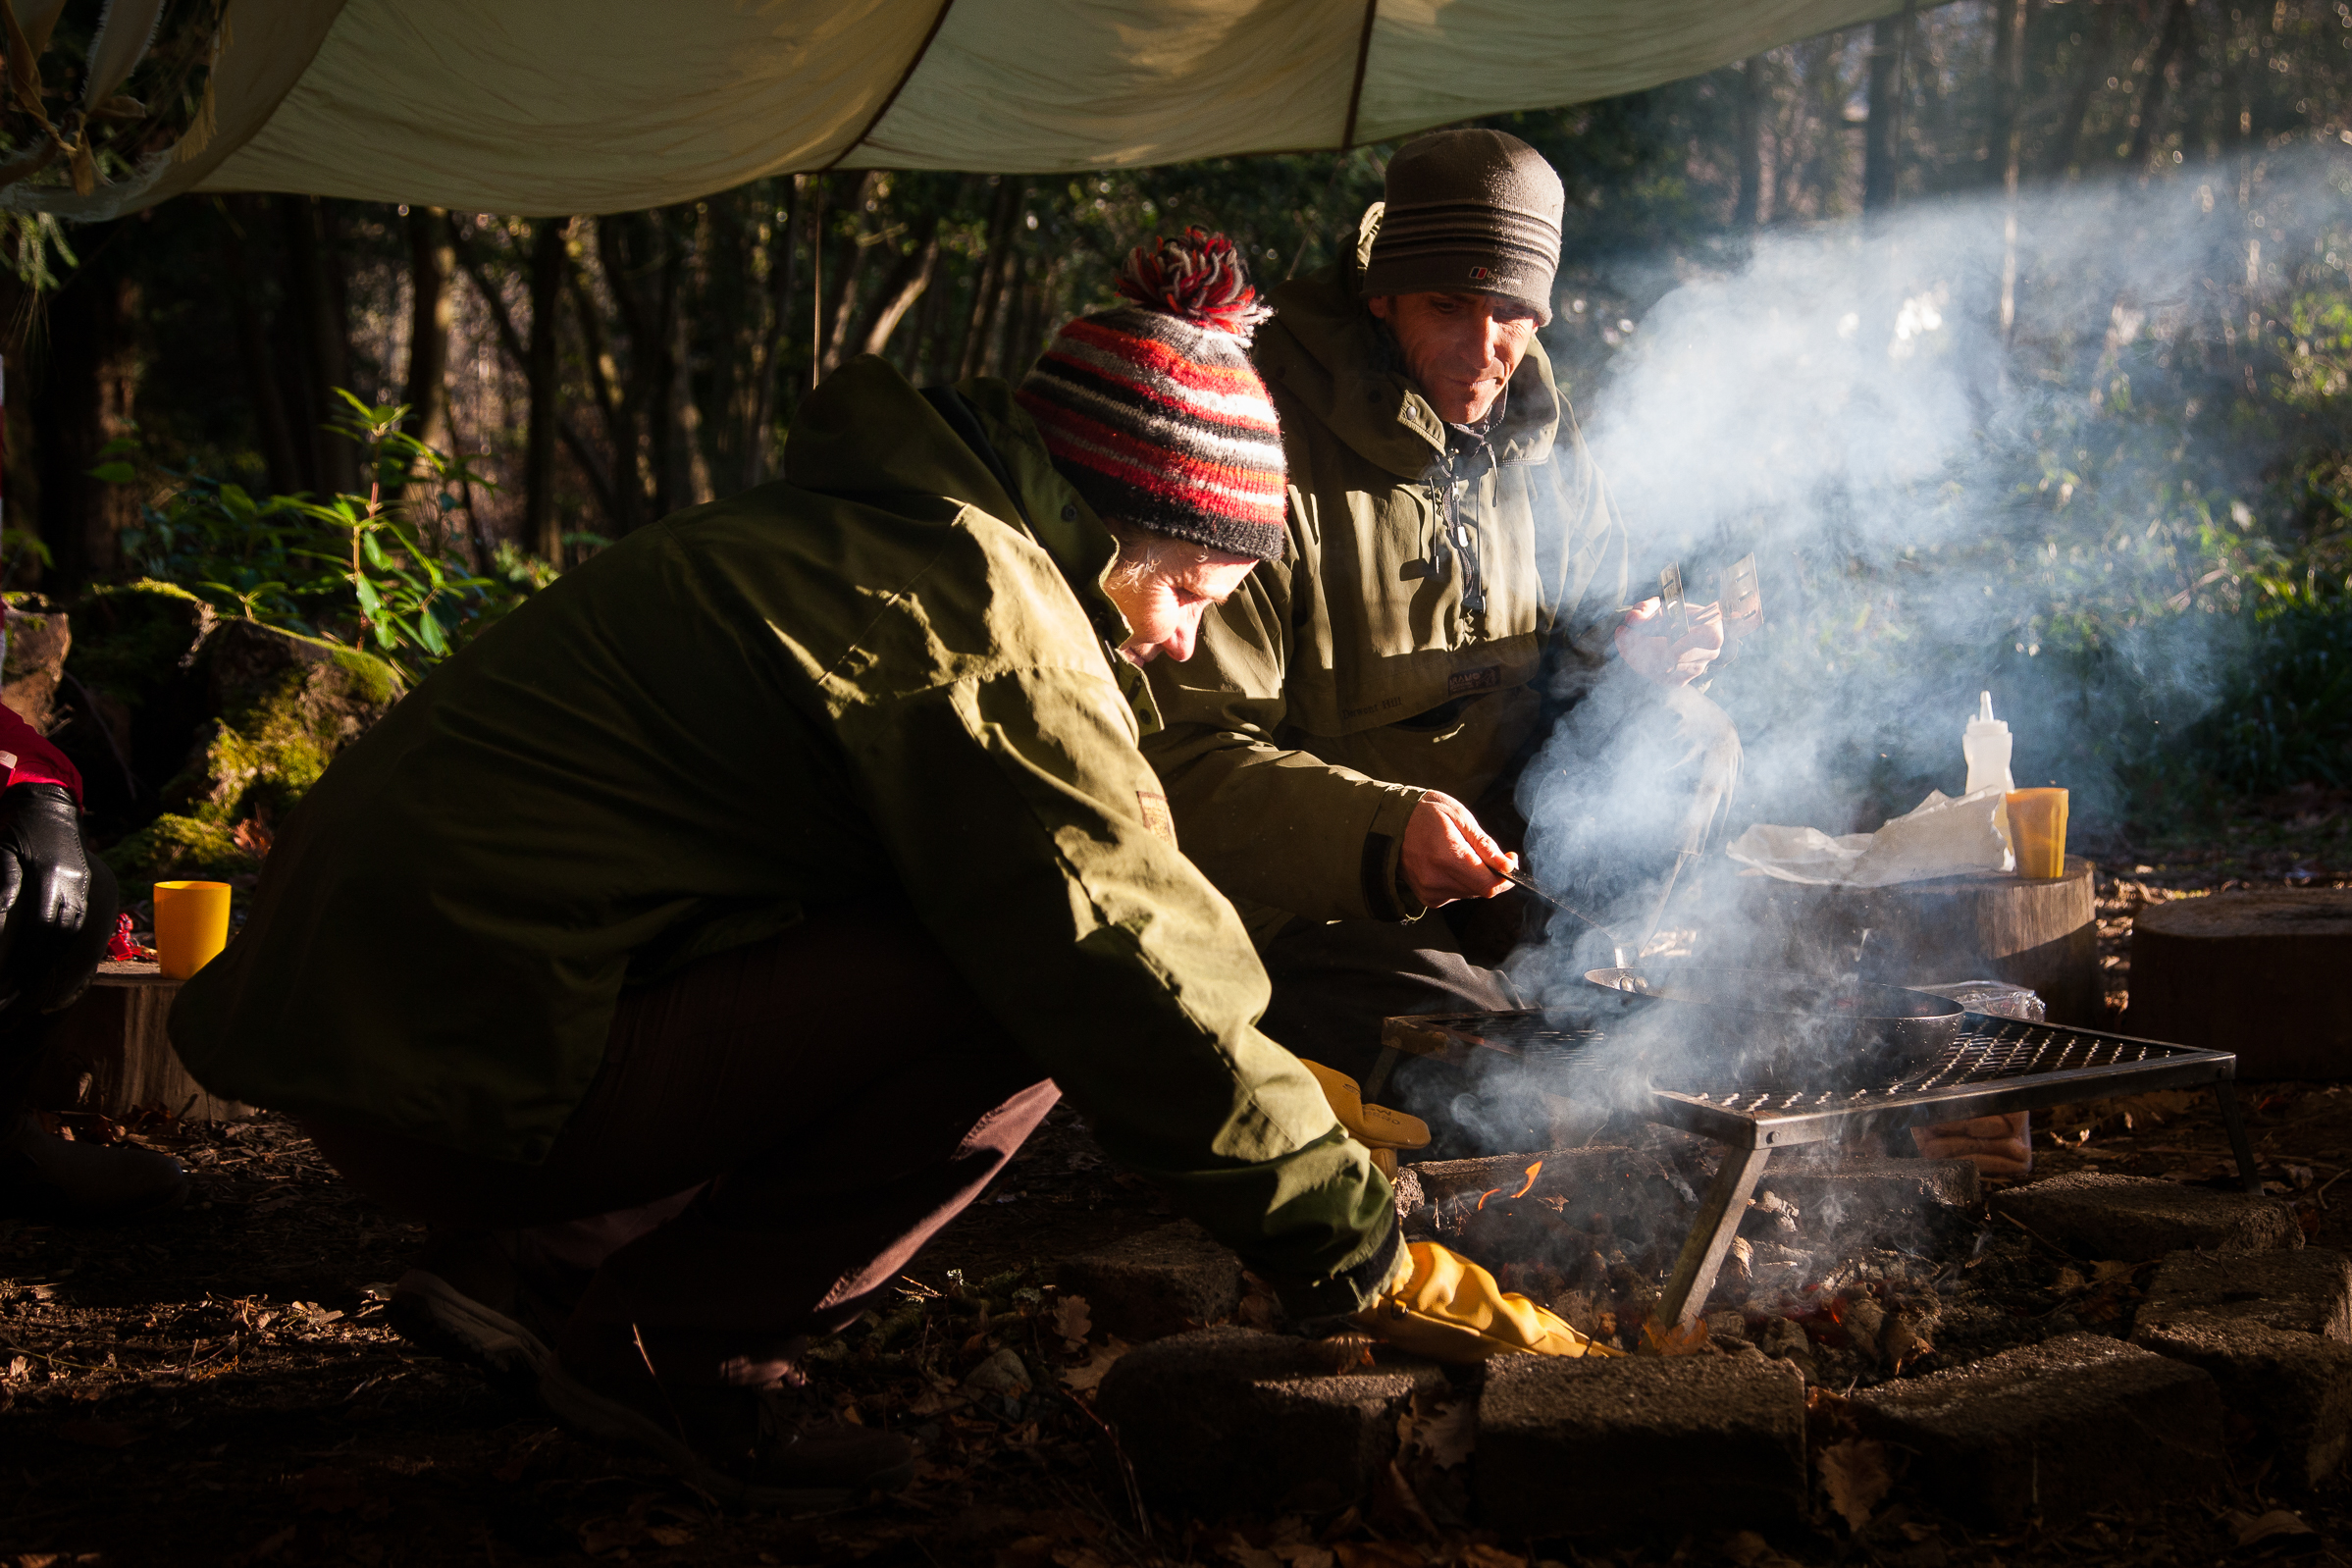 Sue Middleton Bushcraft cooking under a parachute in the woods